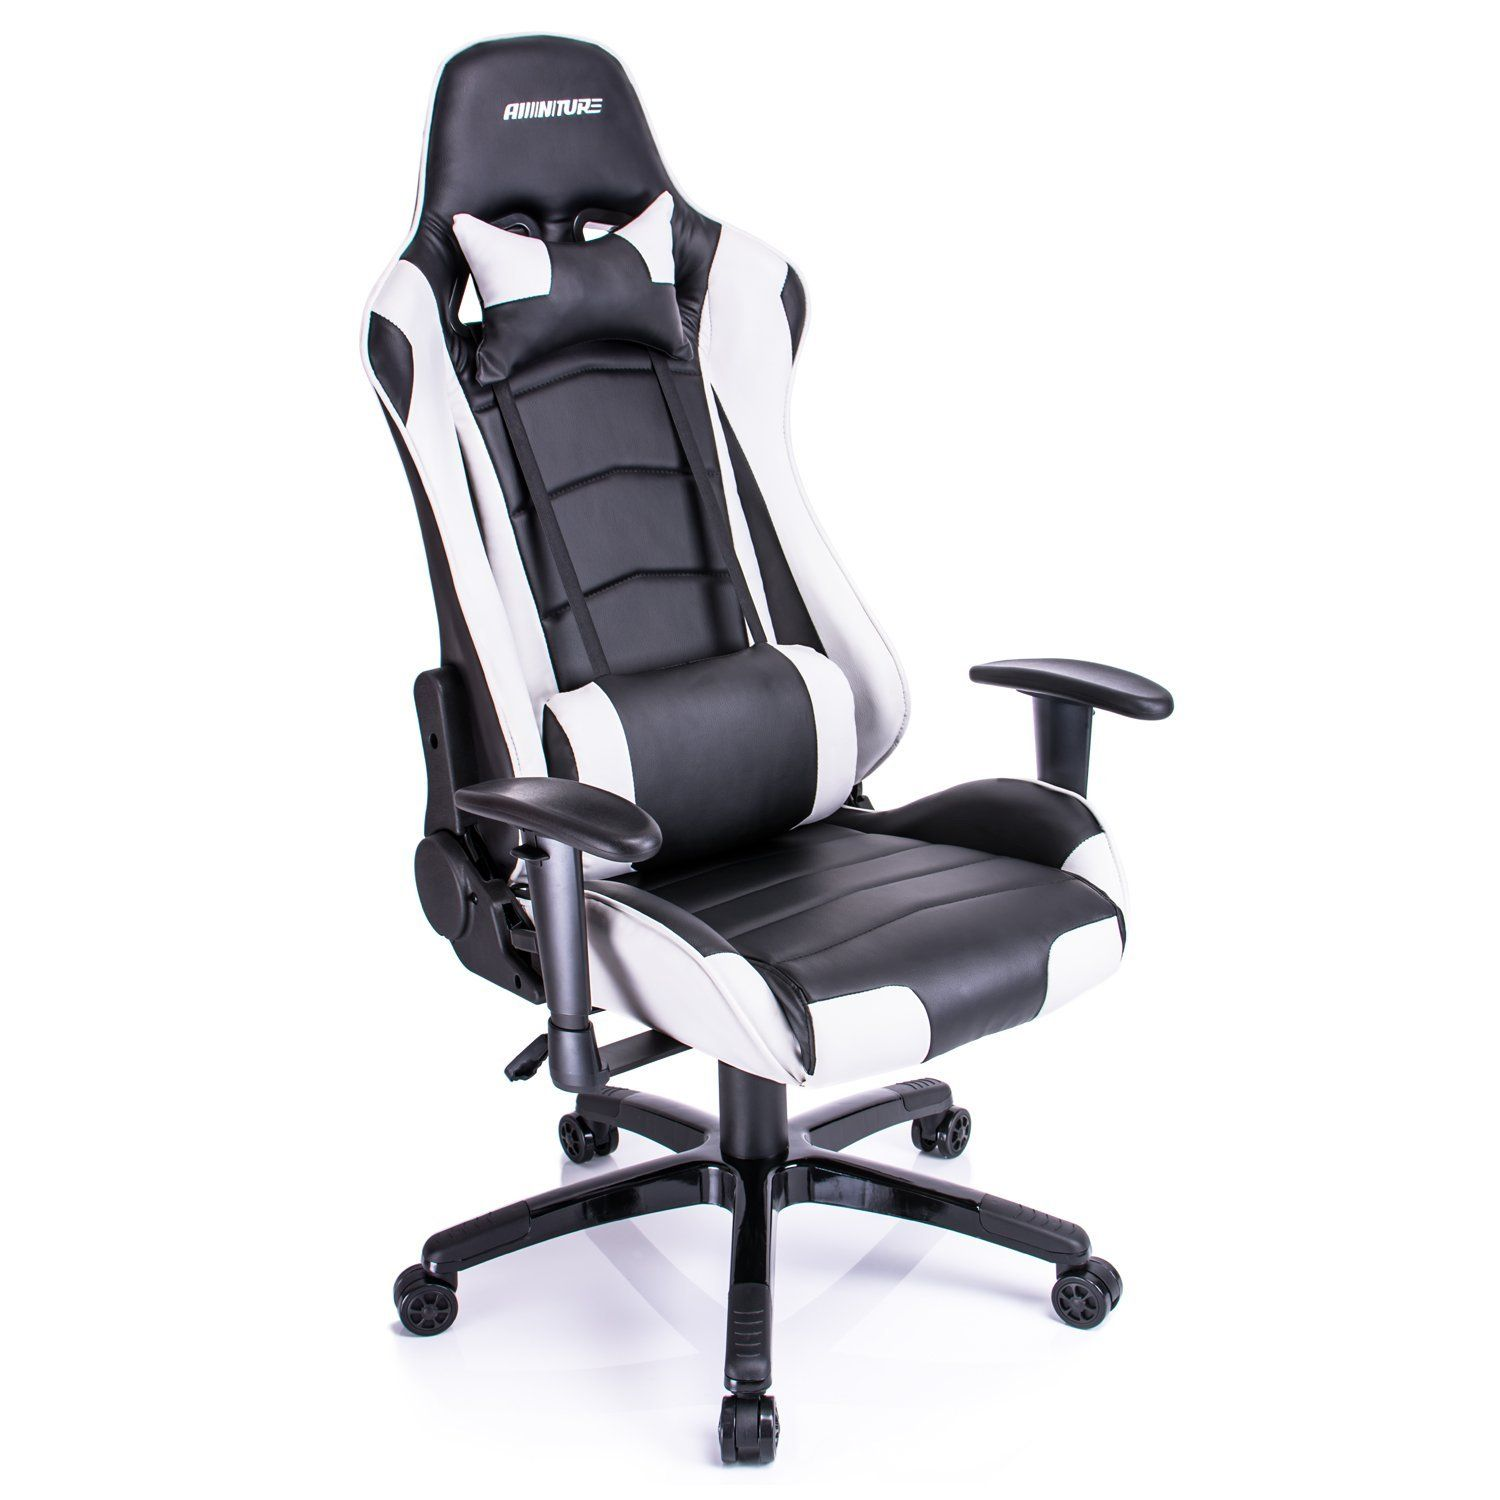 Amazon.com: Aminitrue High-back Gaming Chair Racing Style